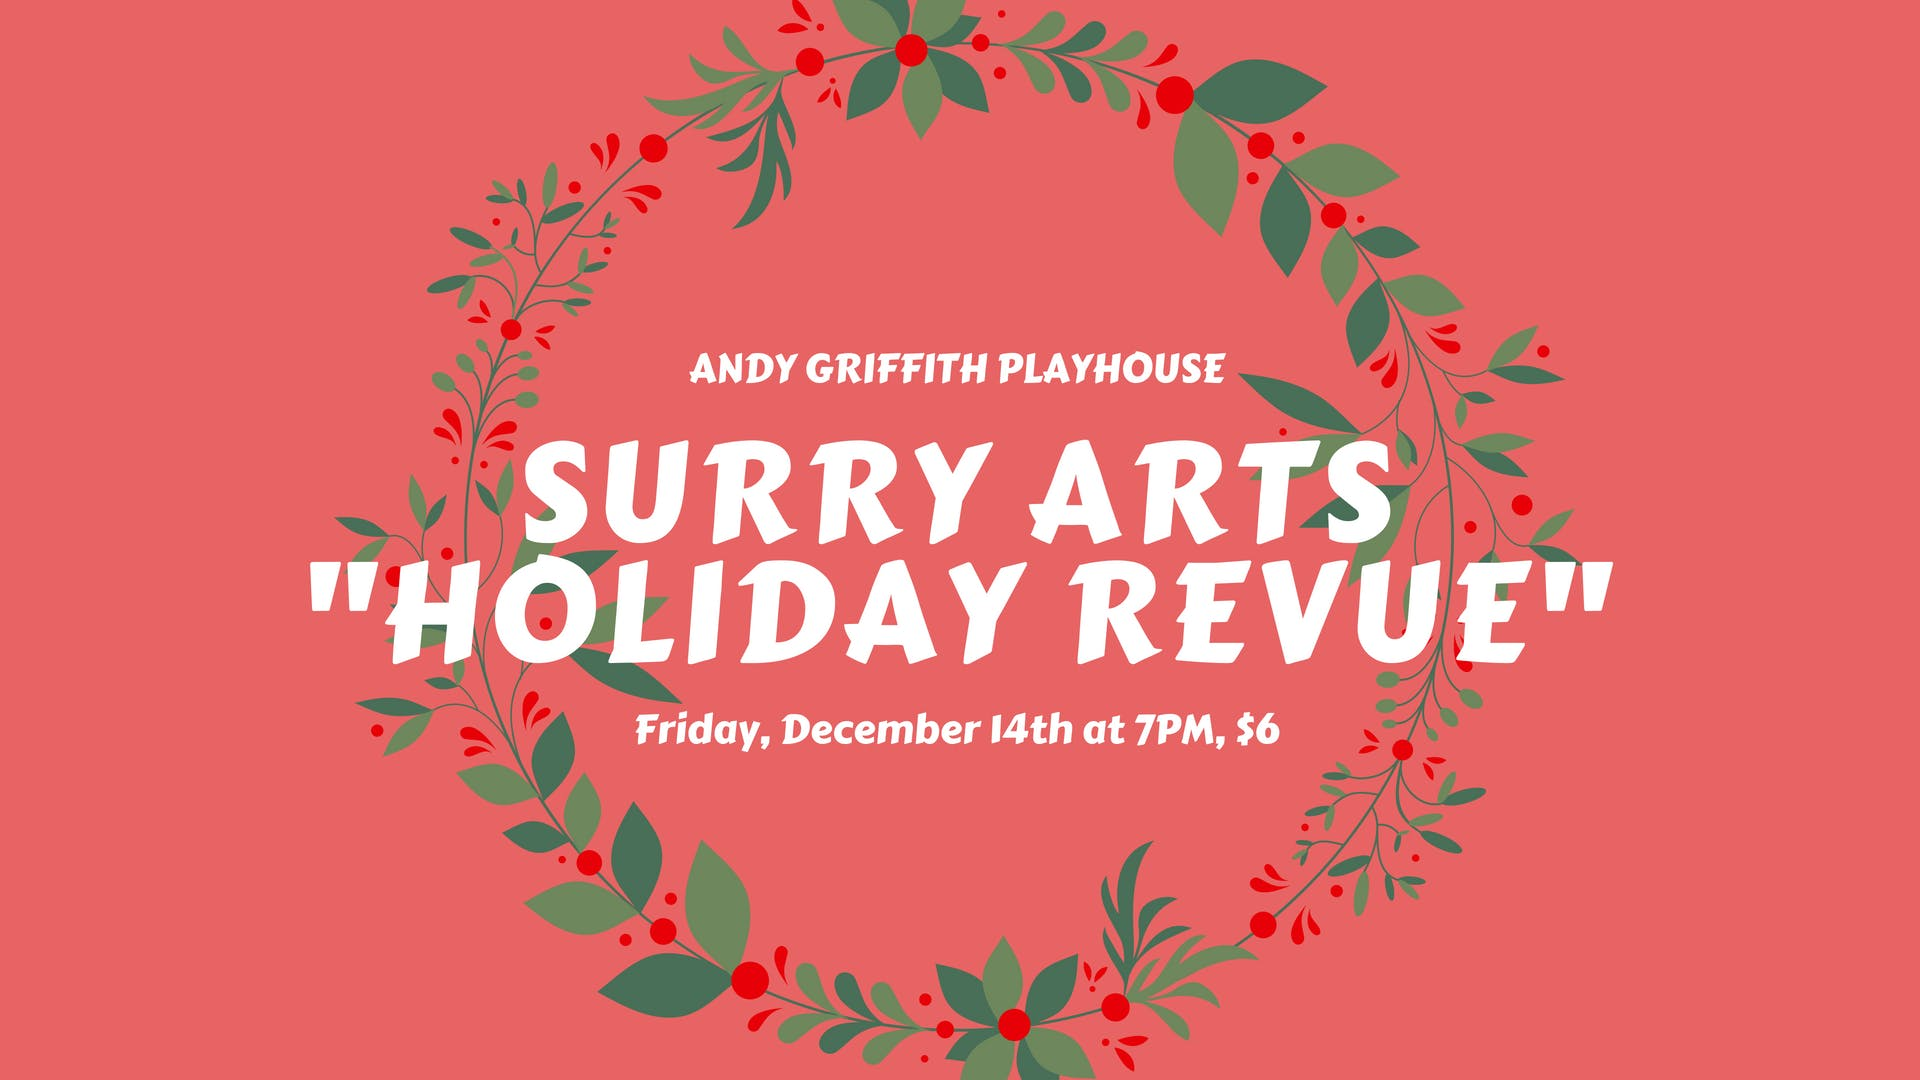 Surry Arts Holiday Revue Friday, December 14t